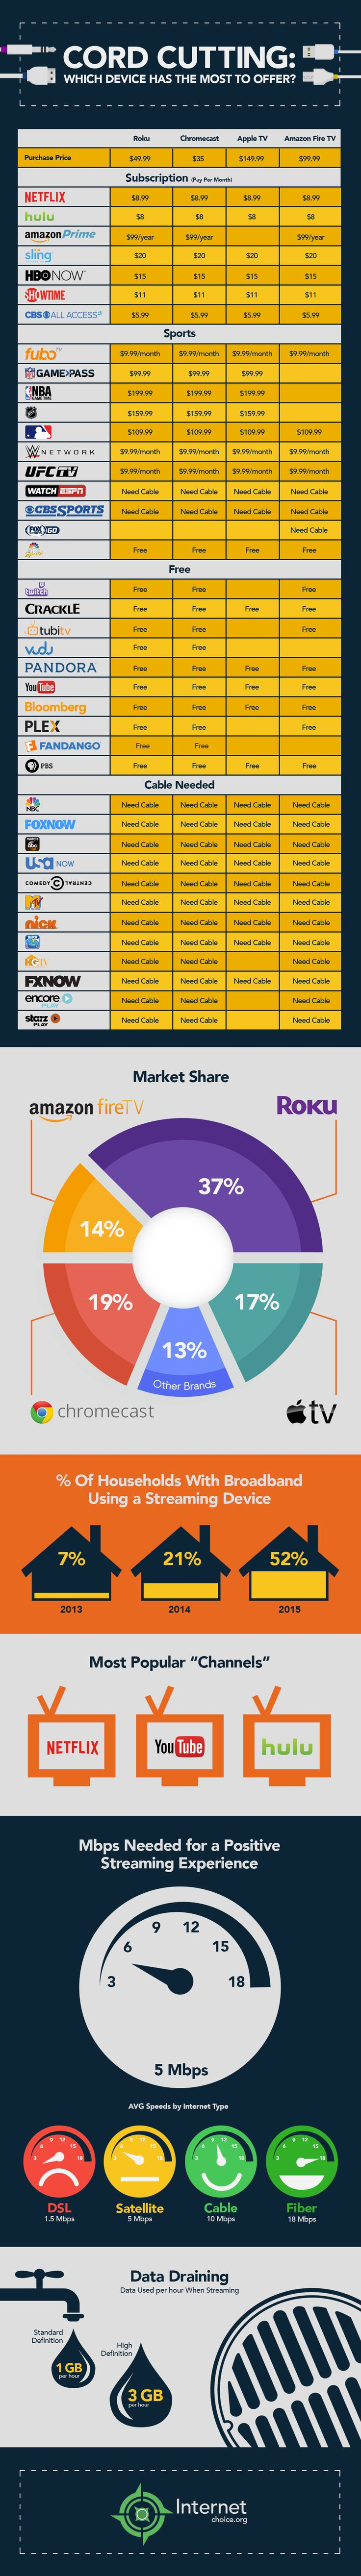 Media Steaming Devices Compared (Roku Apple TV Chromecast and Amazon)